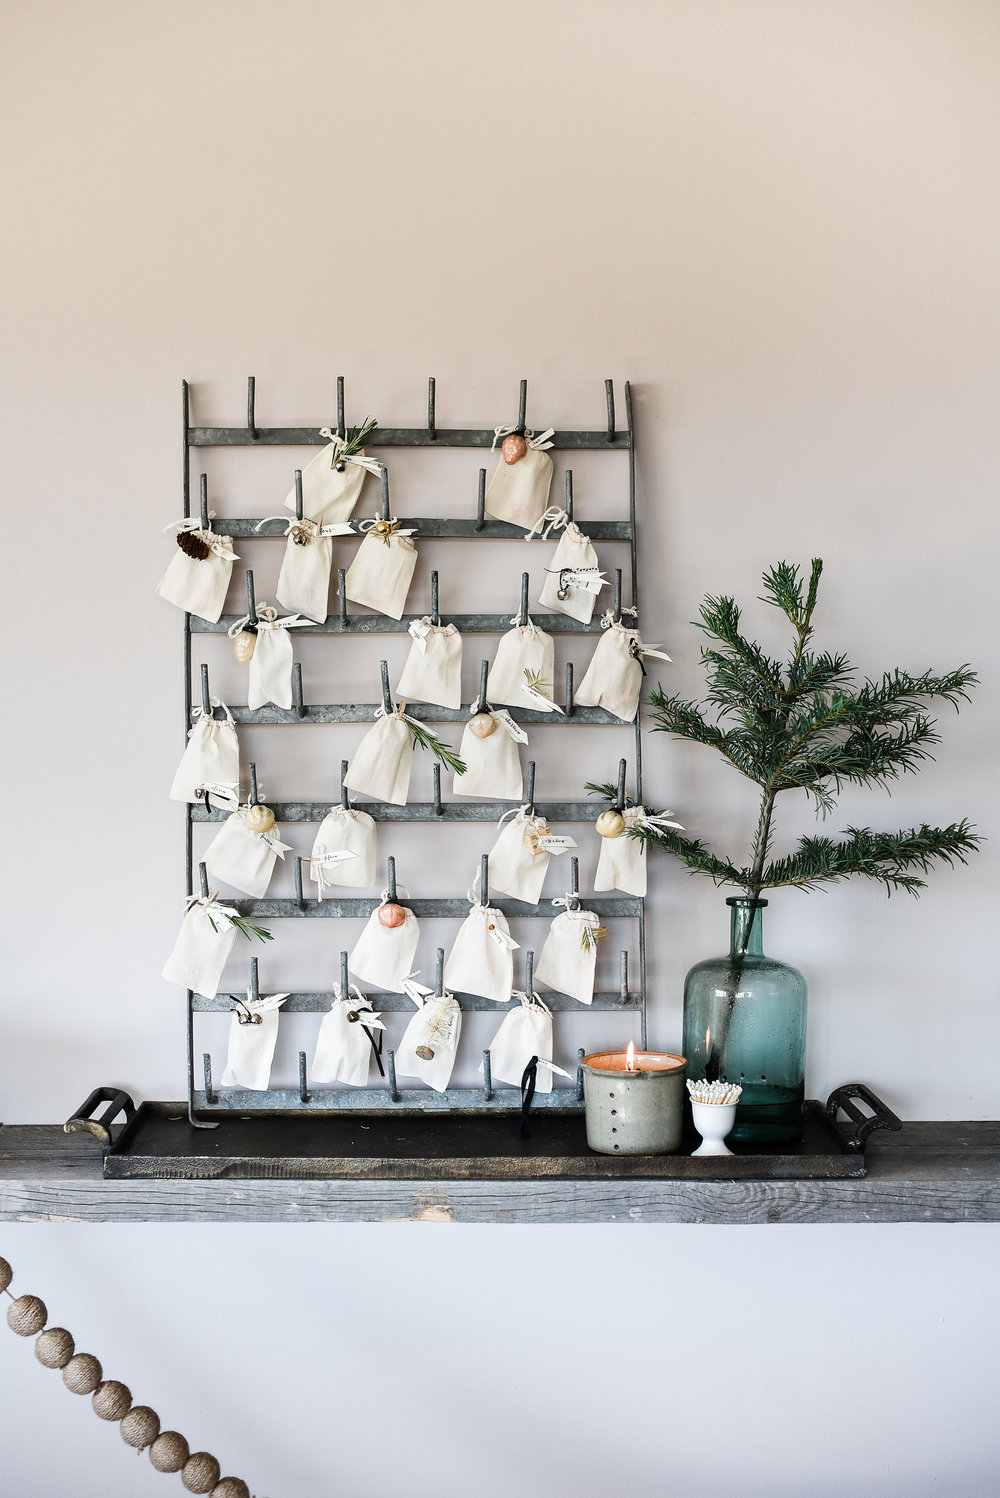 Darling farmhouse advent calendar from boxwoodavenue.com #christmasdecor #farmhousechristmas